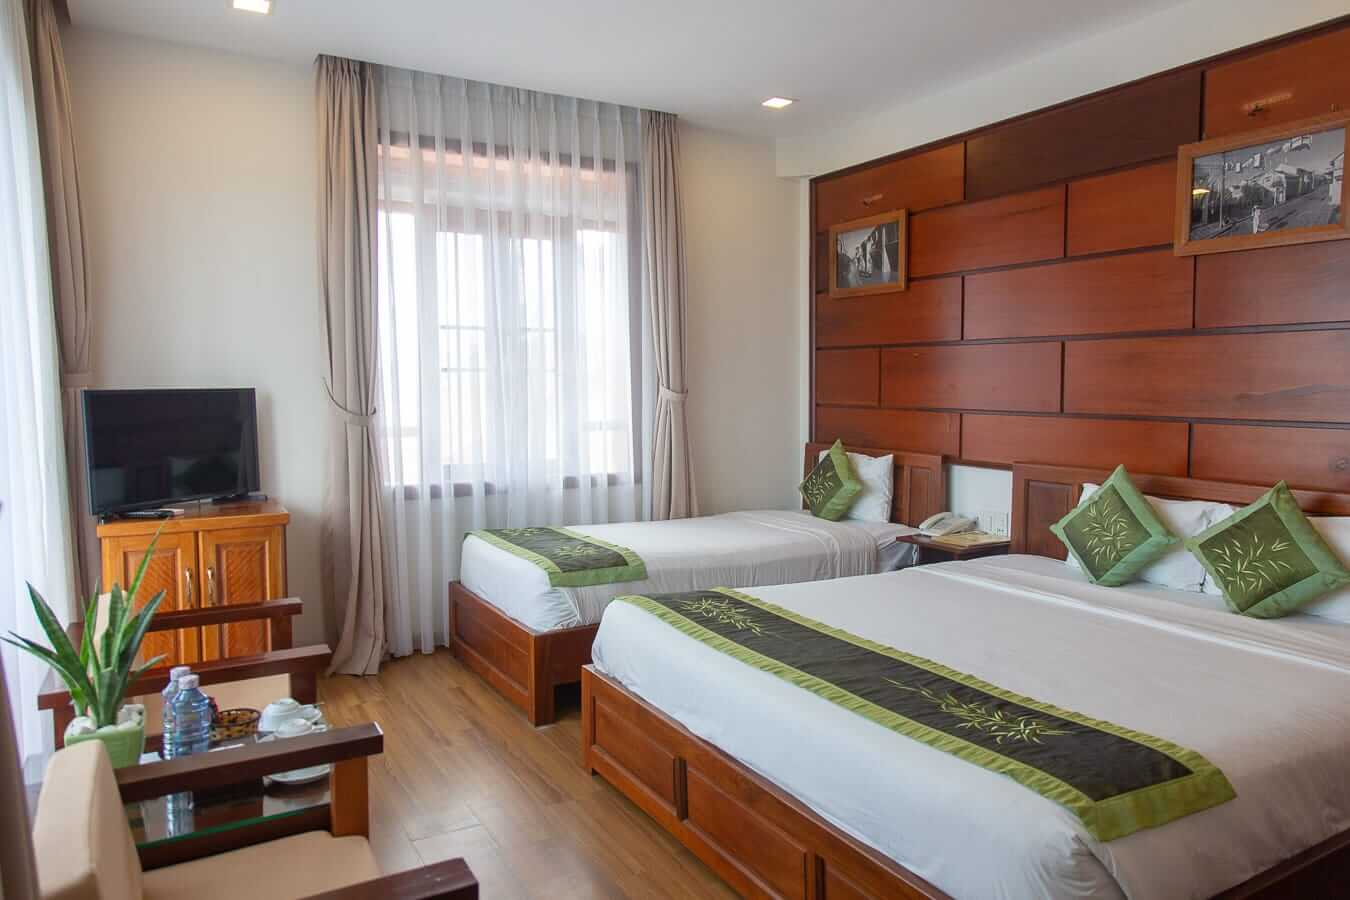 Kiman Hotel: Best Hoi An hotels